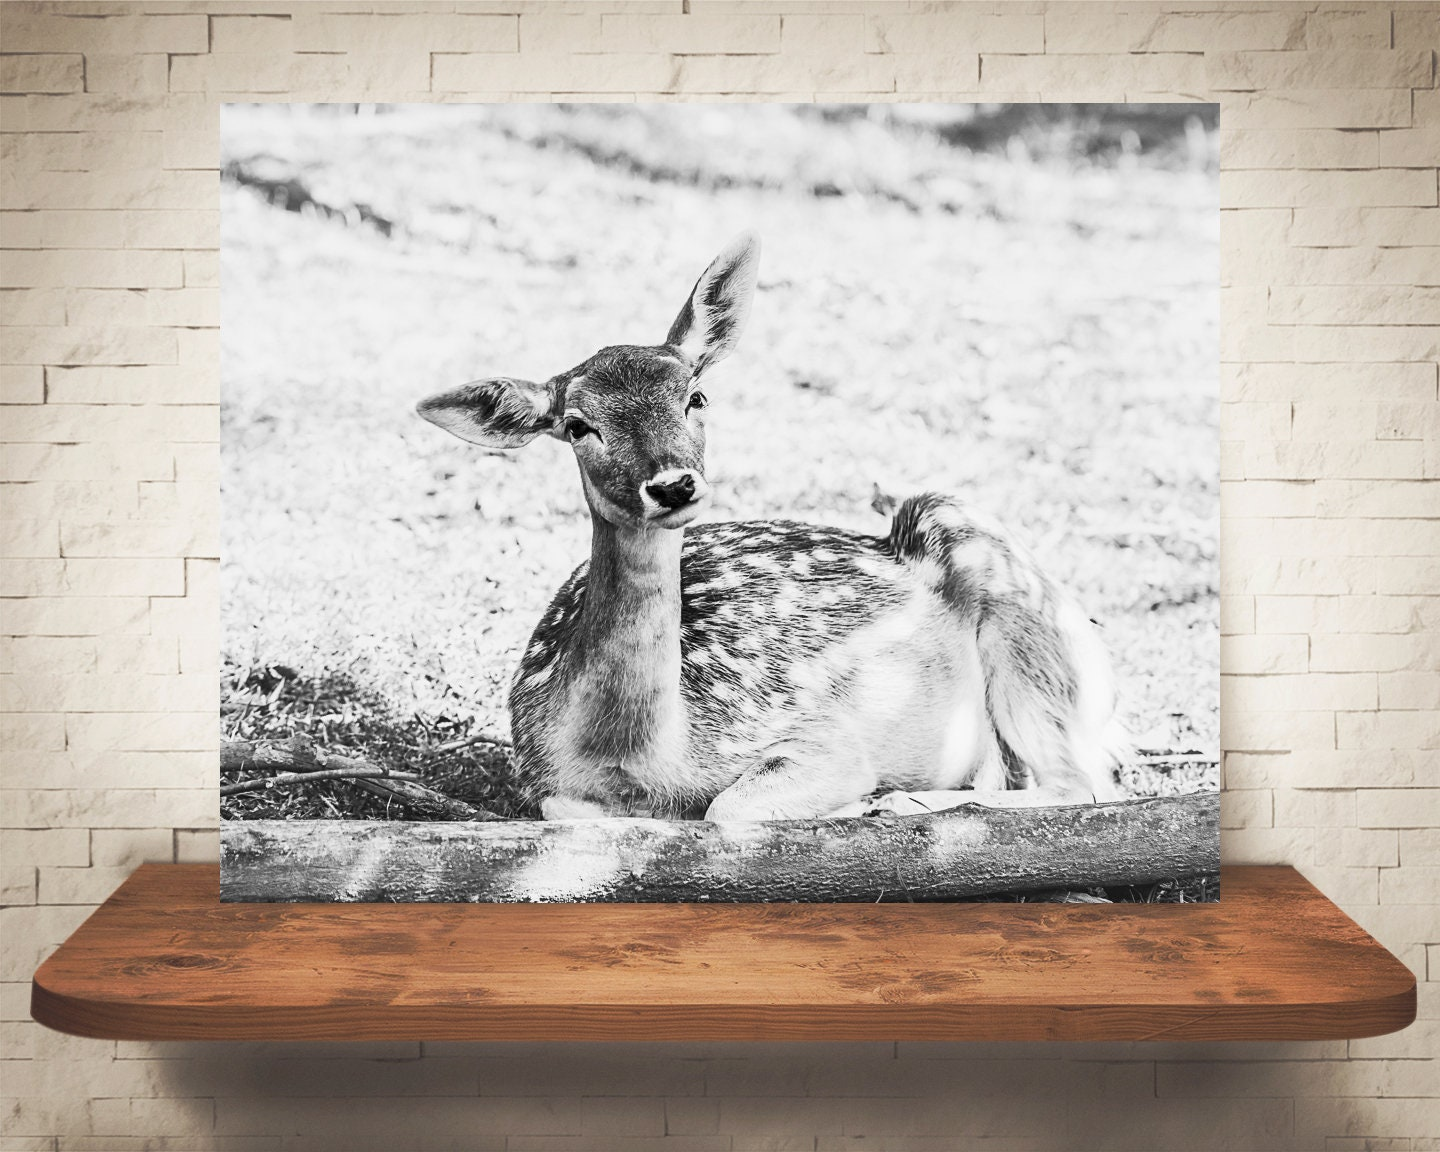 Wall Art Deer Photograph Woodland Animal Pictures Fine Art Print Black White Photo Country Decor Nature Prints